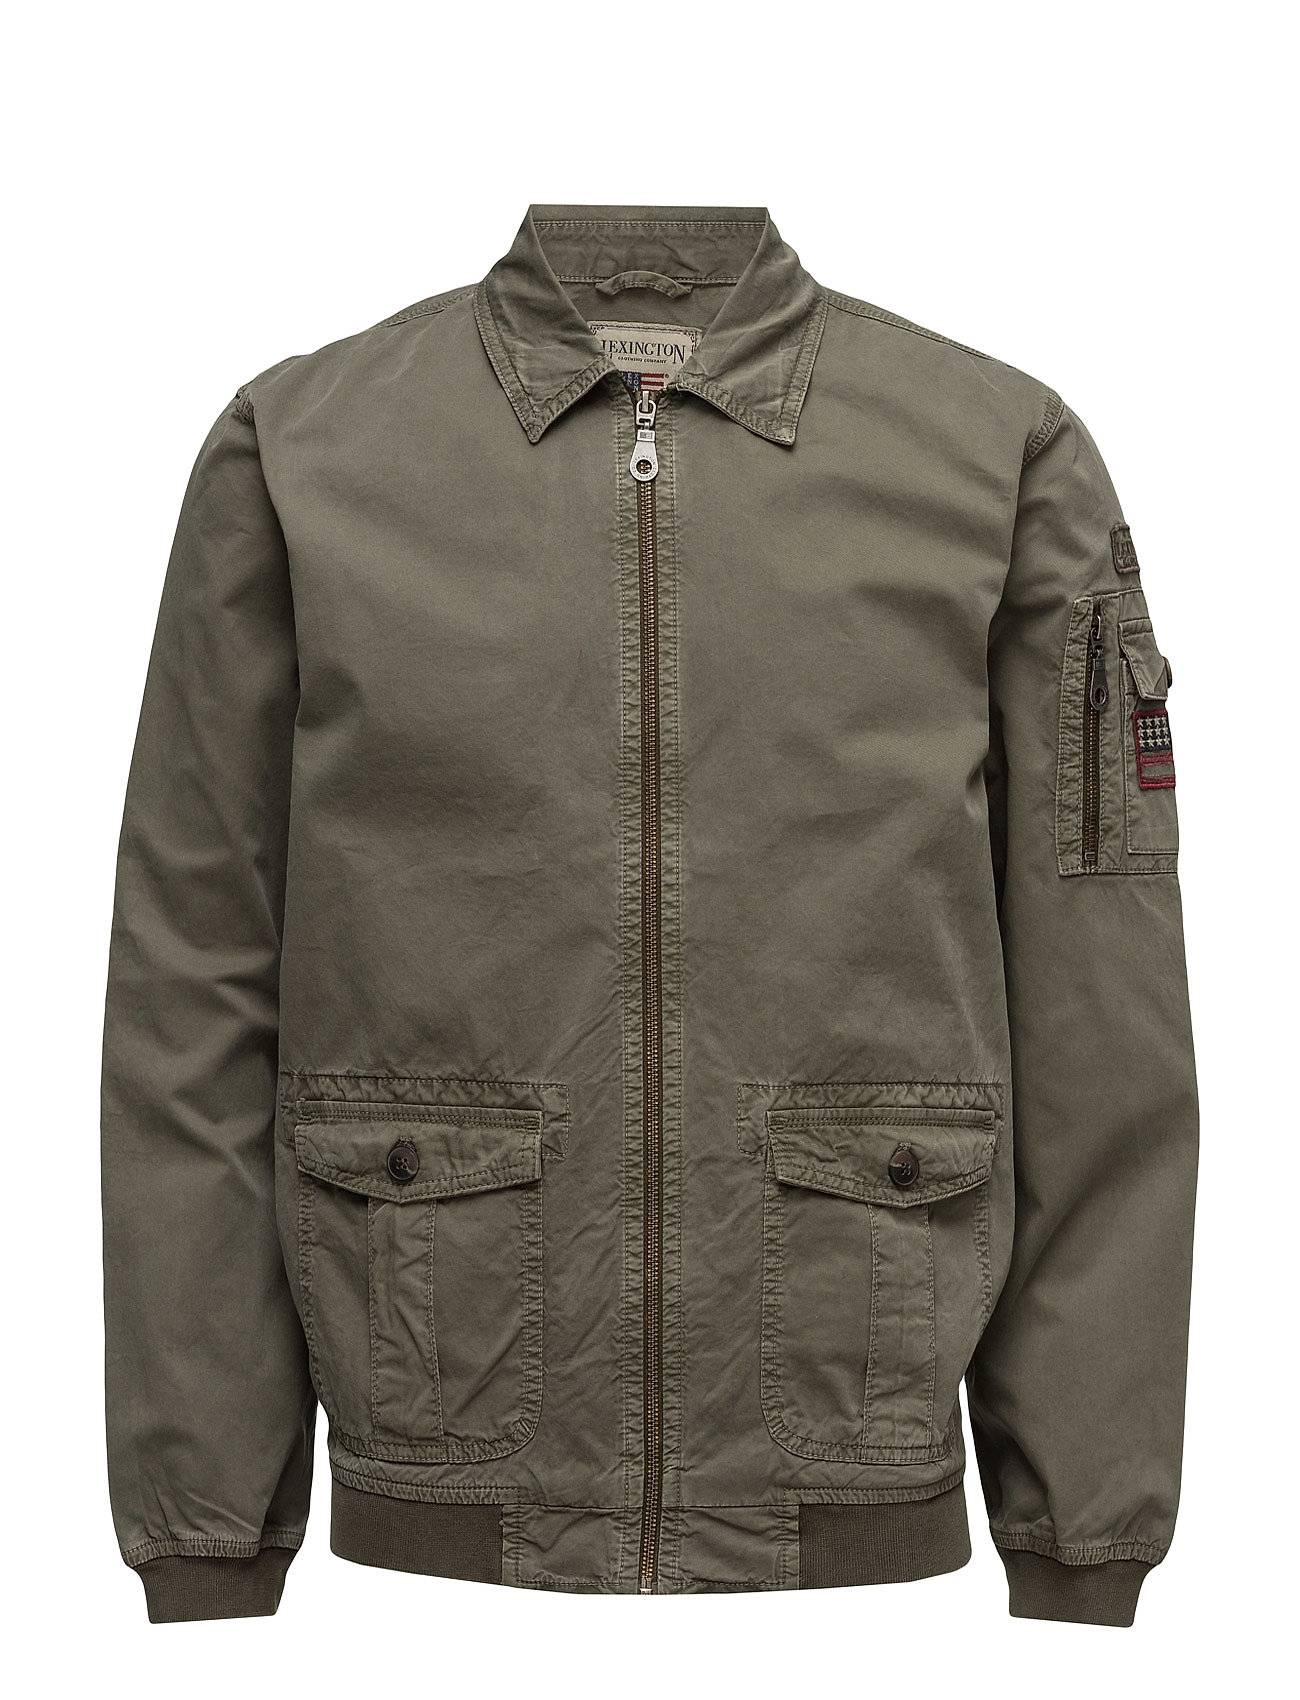 Lexington Clothing Layton Pilot Jacket